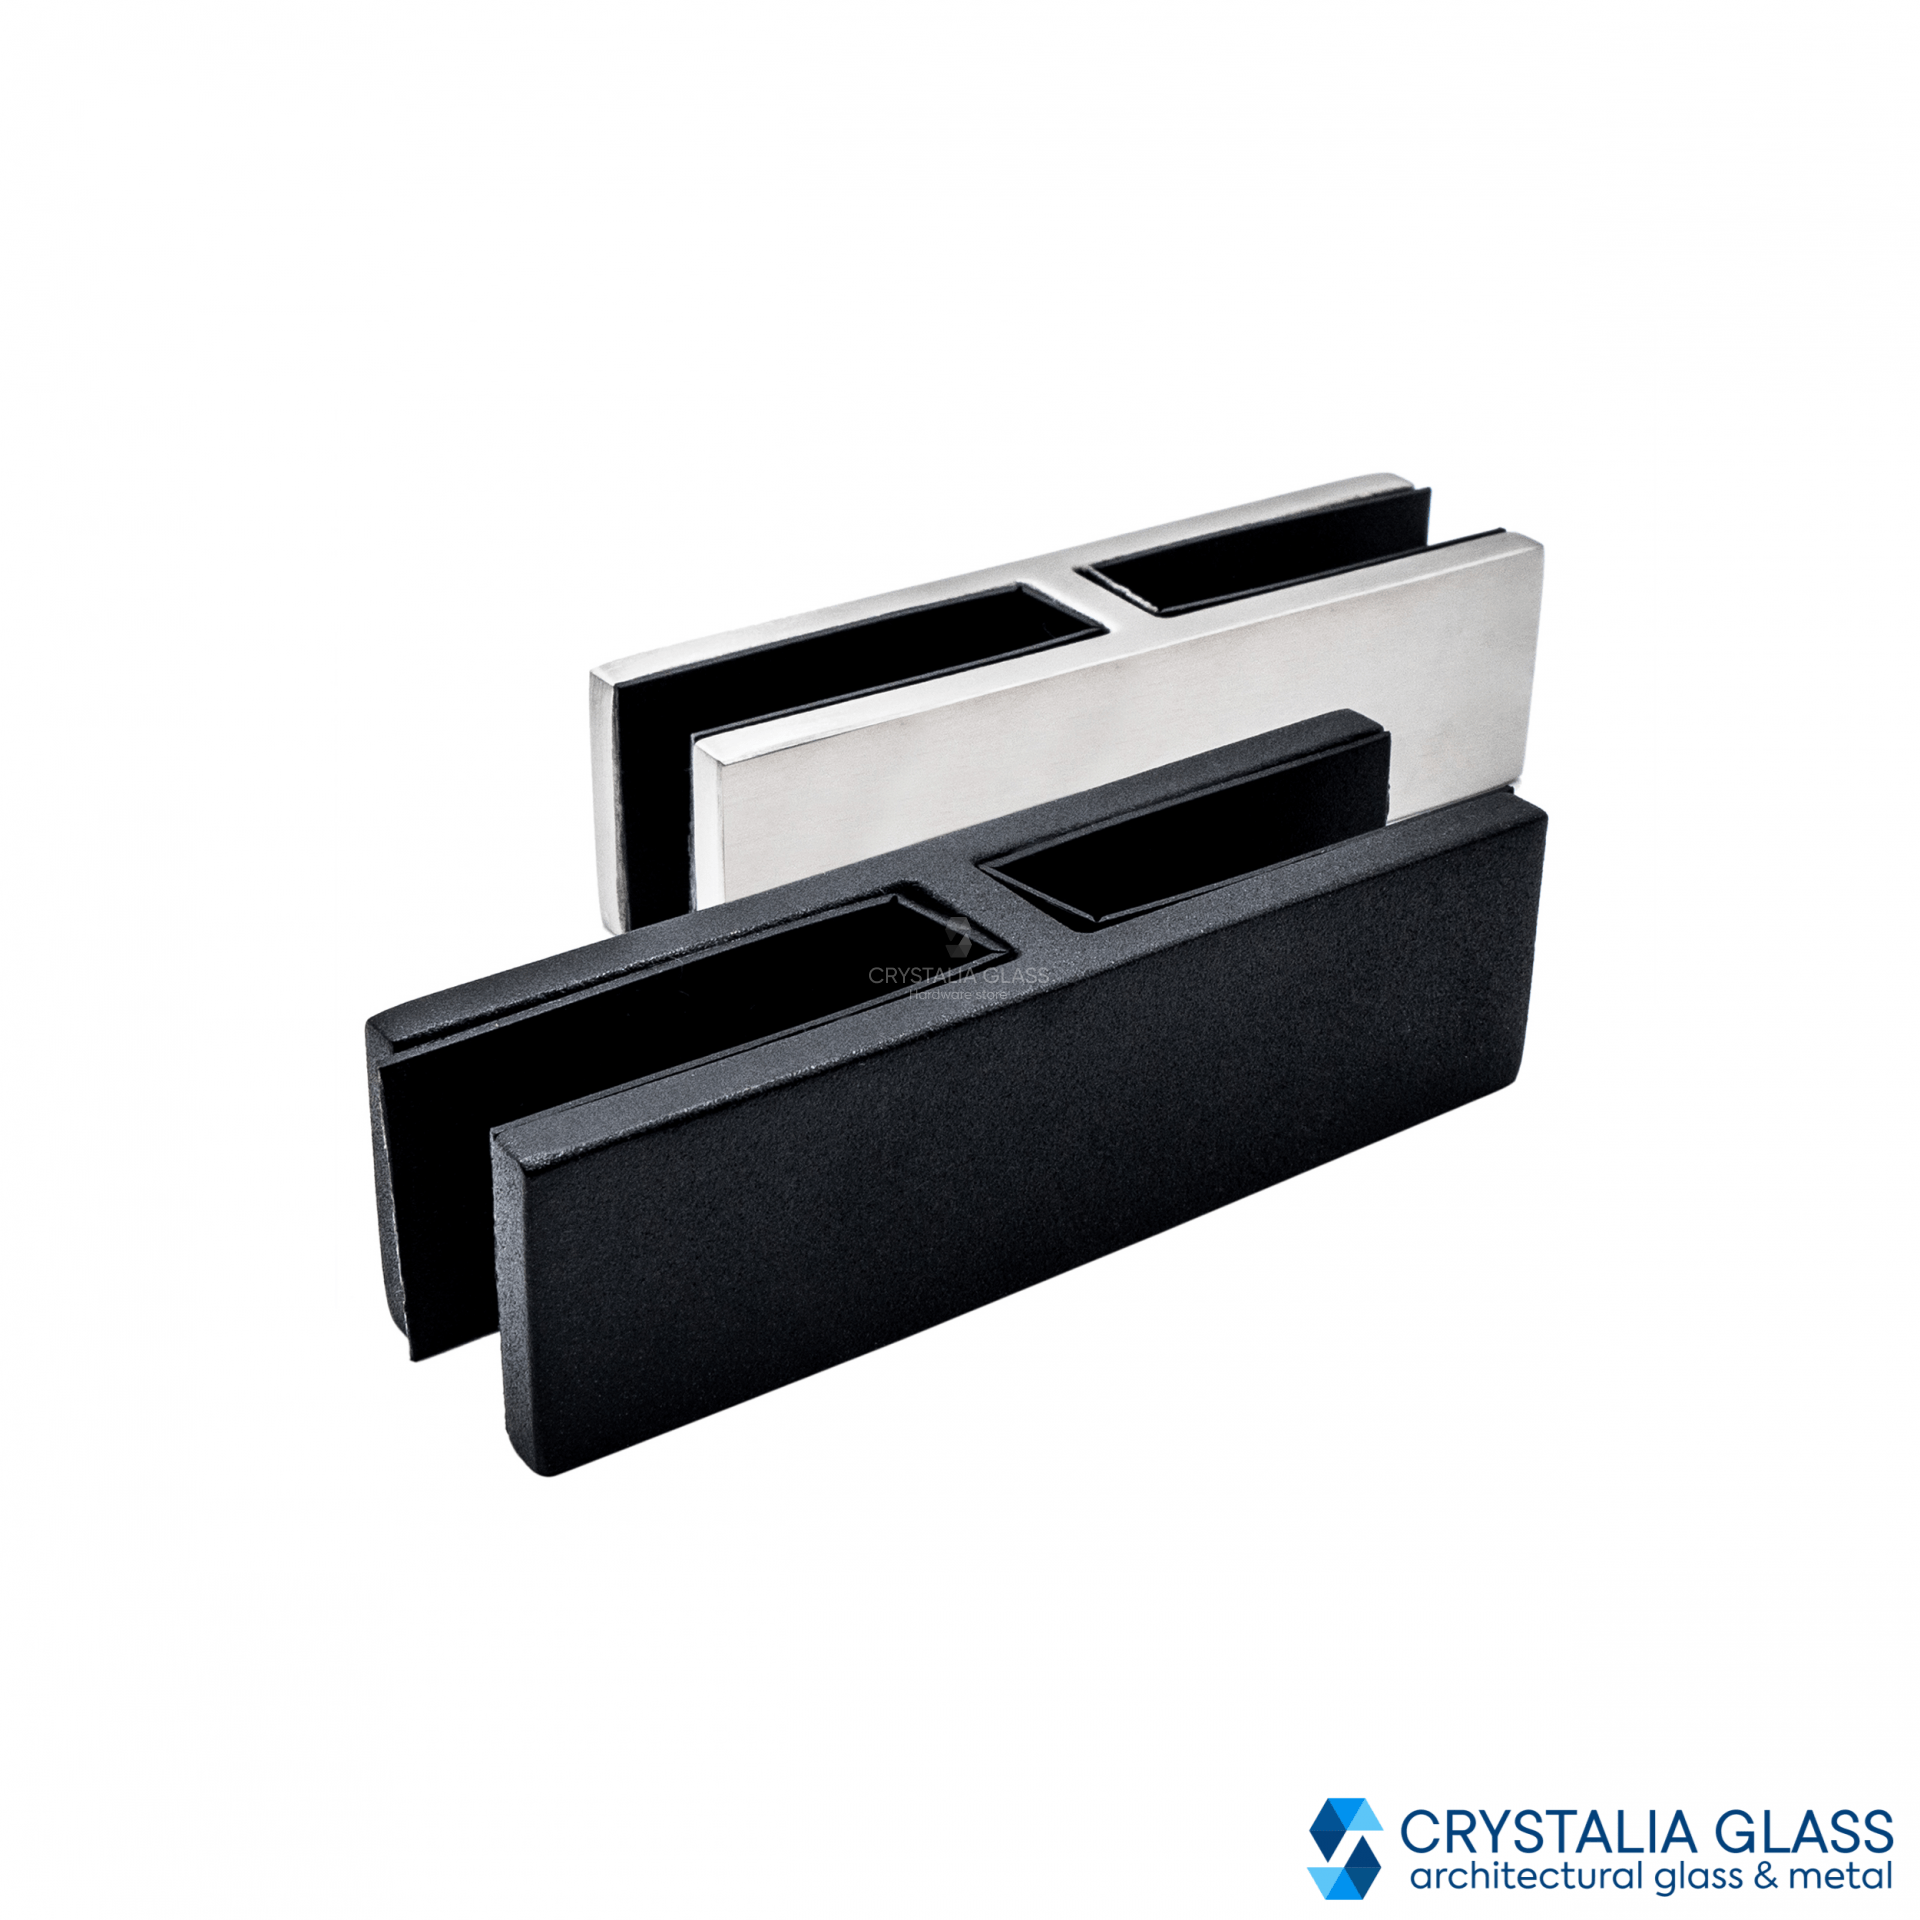 CG Black Matte 180 Degree Glass Clamp